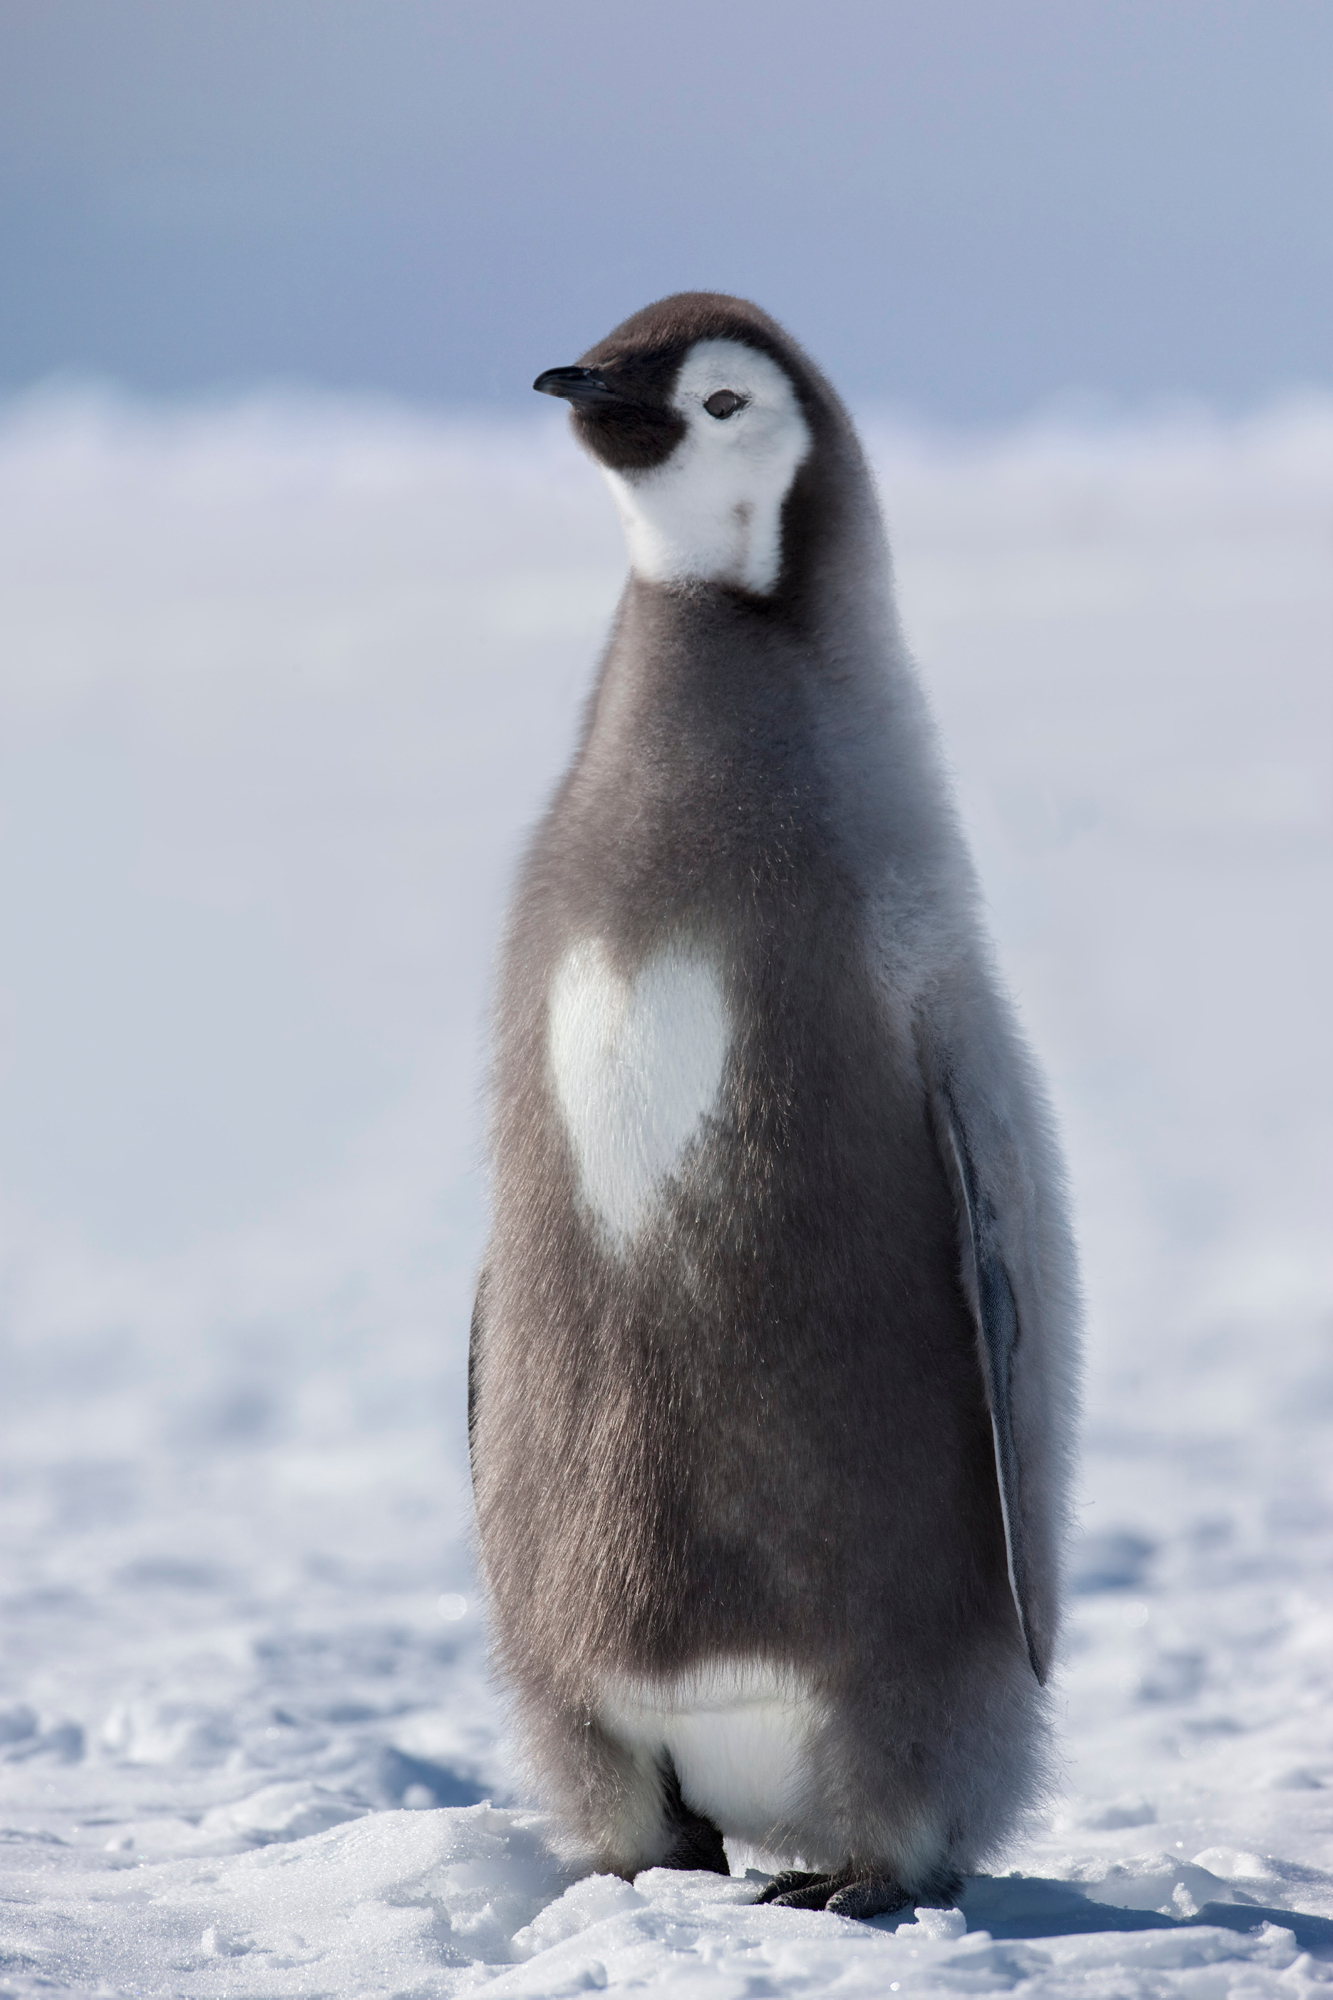 A young penguin captured by Sue Flood